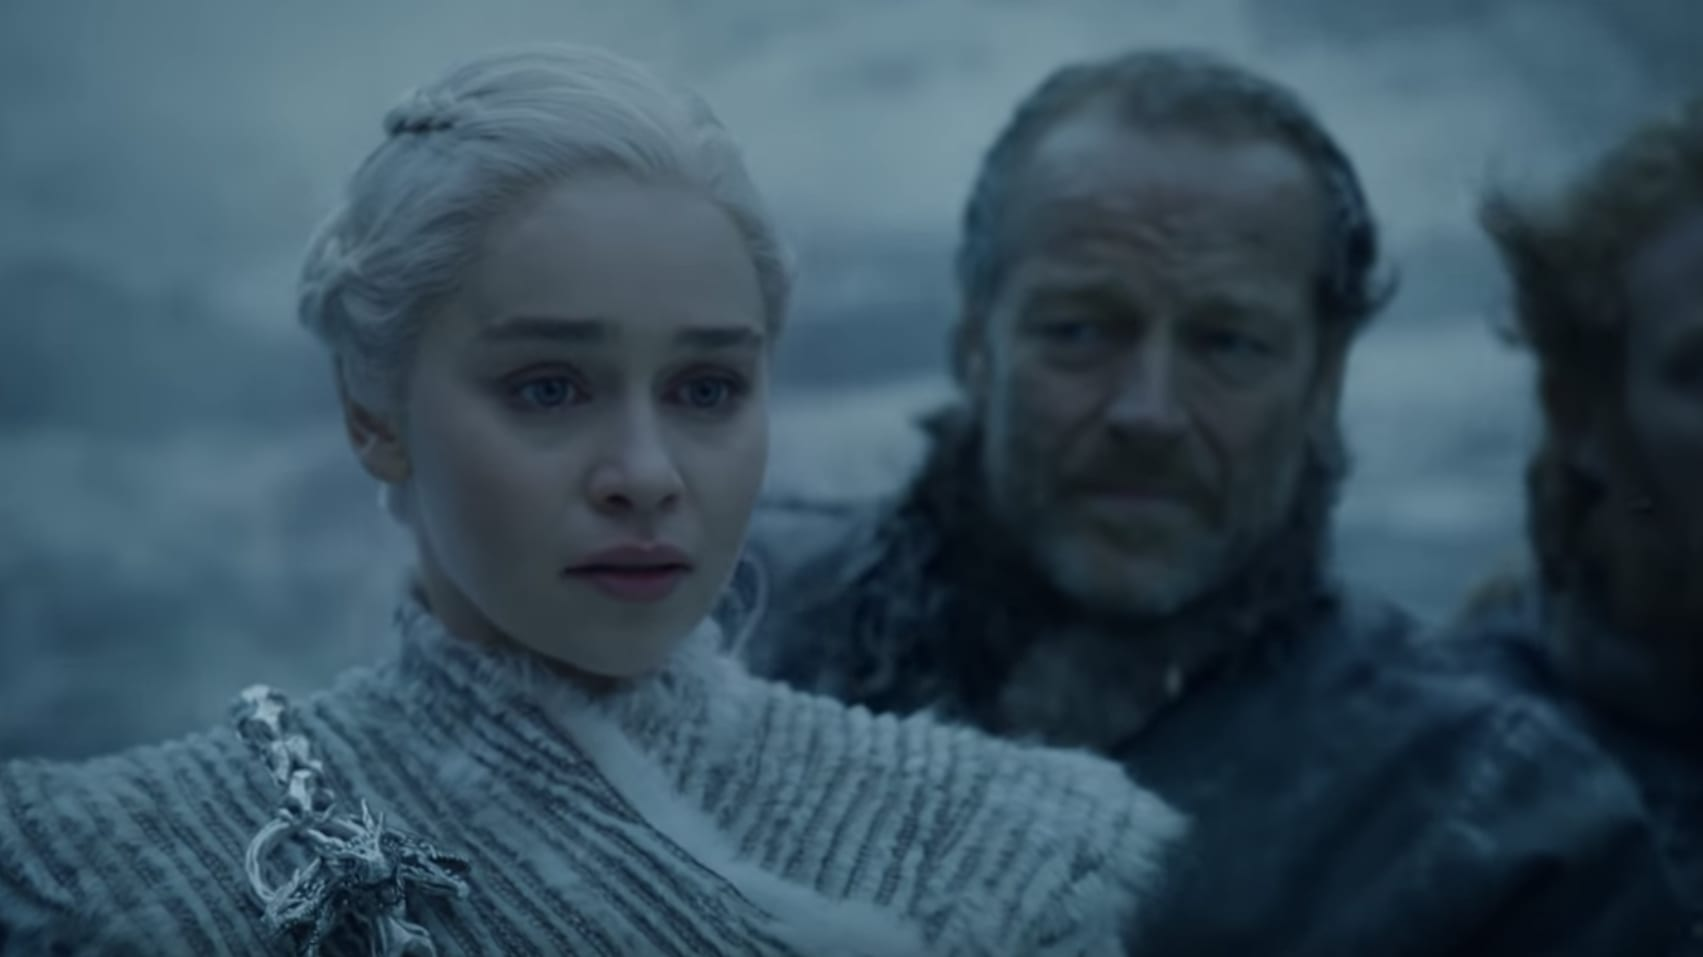 HBO Announces 'Game of Thrones' Season 8 Album 'For the Throne' With Major Artists